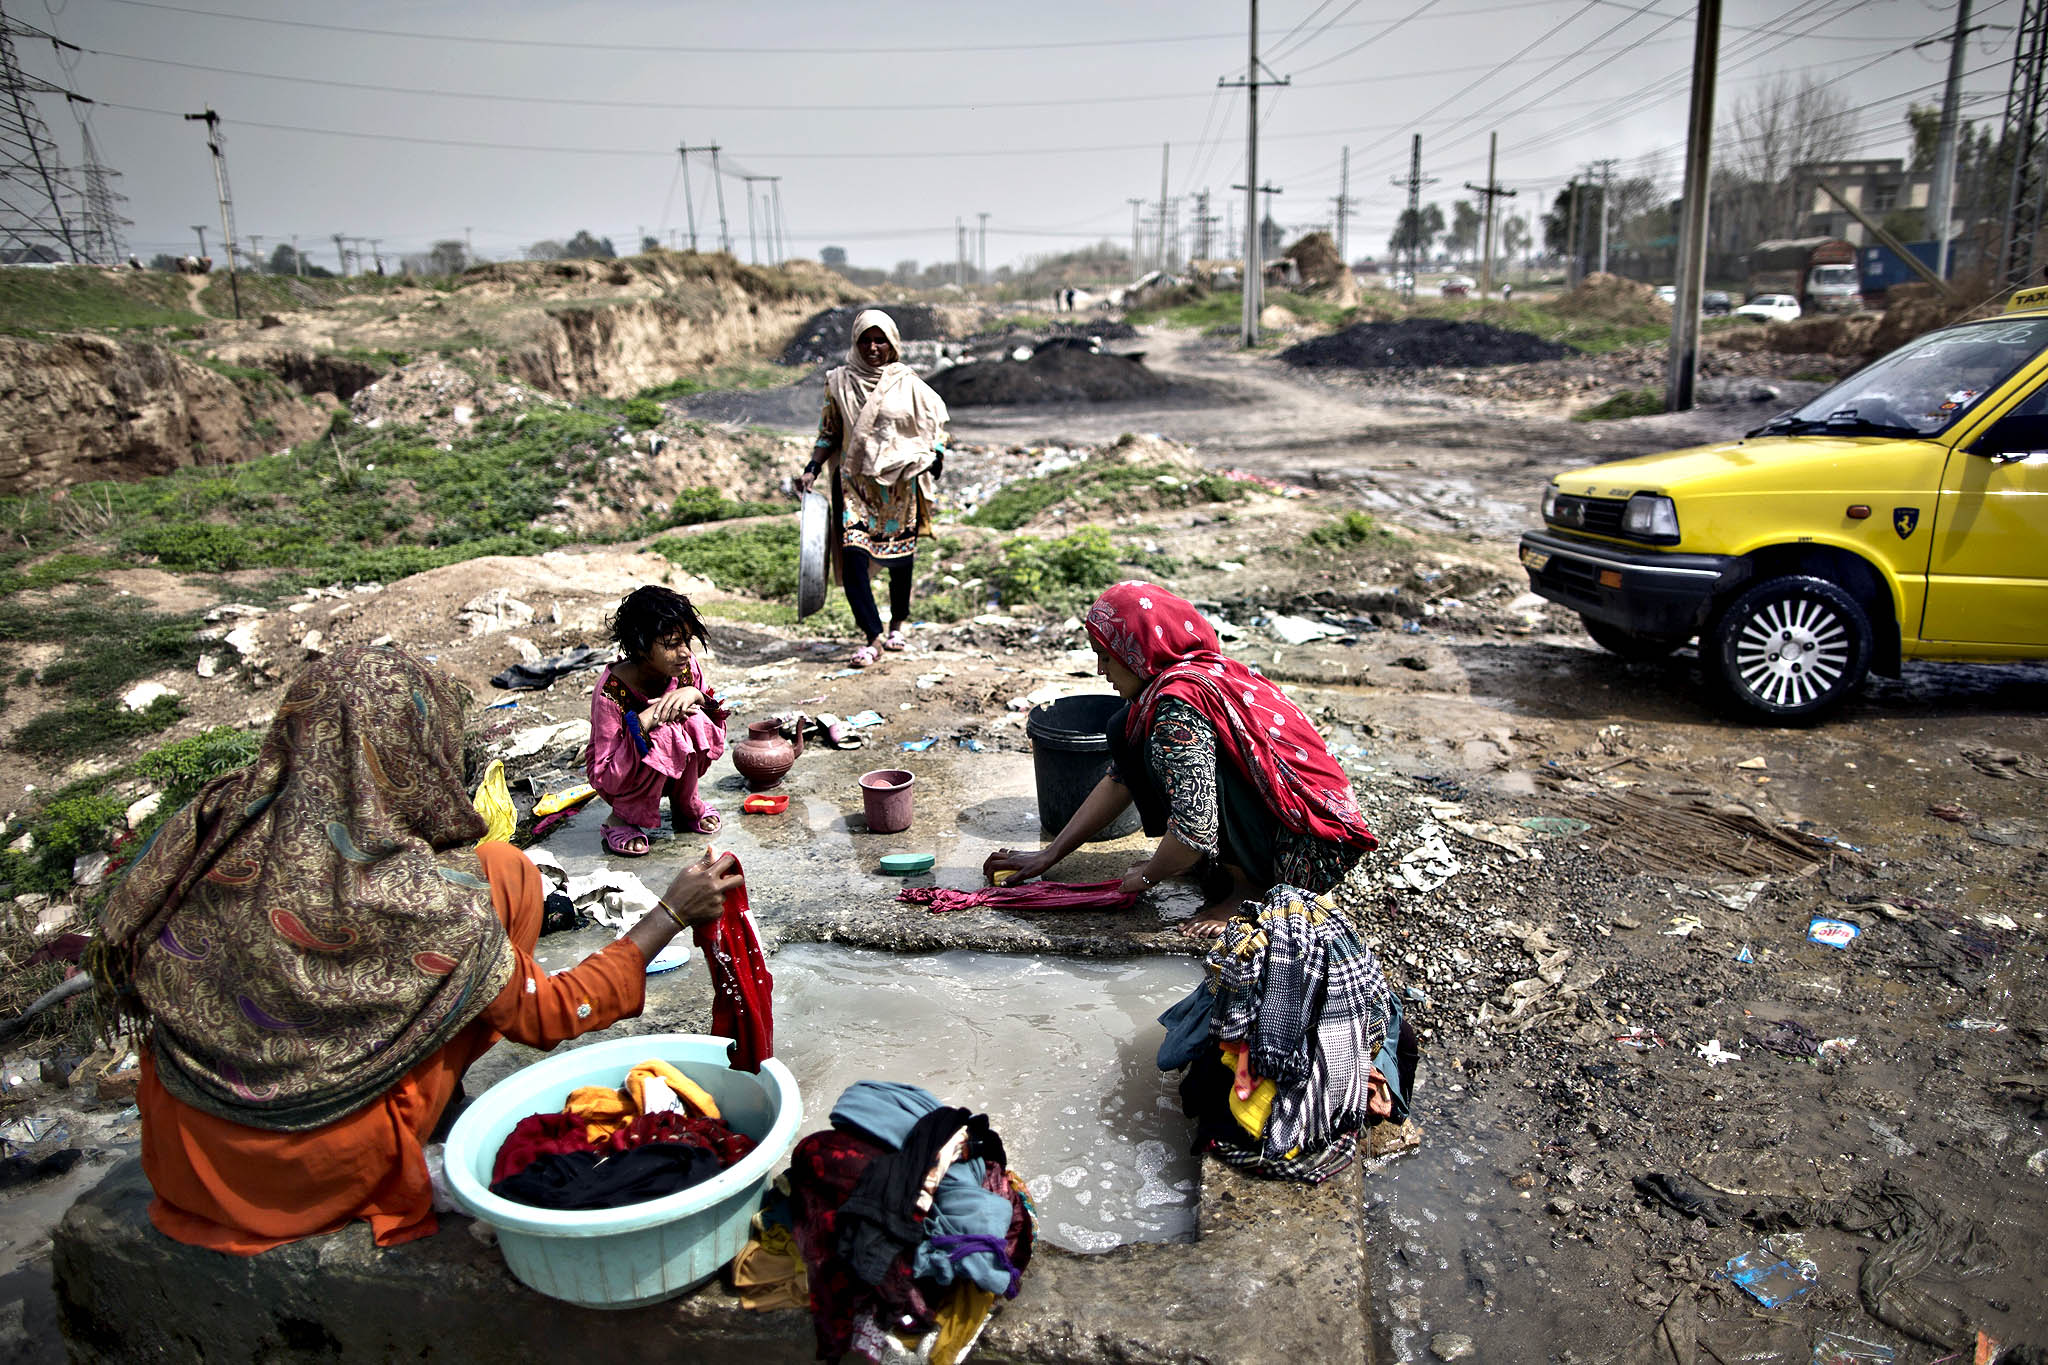 Pakistani women, wash their laundry at a water reservoir, on the outskirts of Islamabad, Pakistan, Thursday, March 20, 2014. The United Nations has proclaimed that March 20 is the International Day of Happiness.